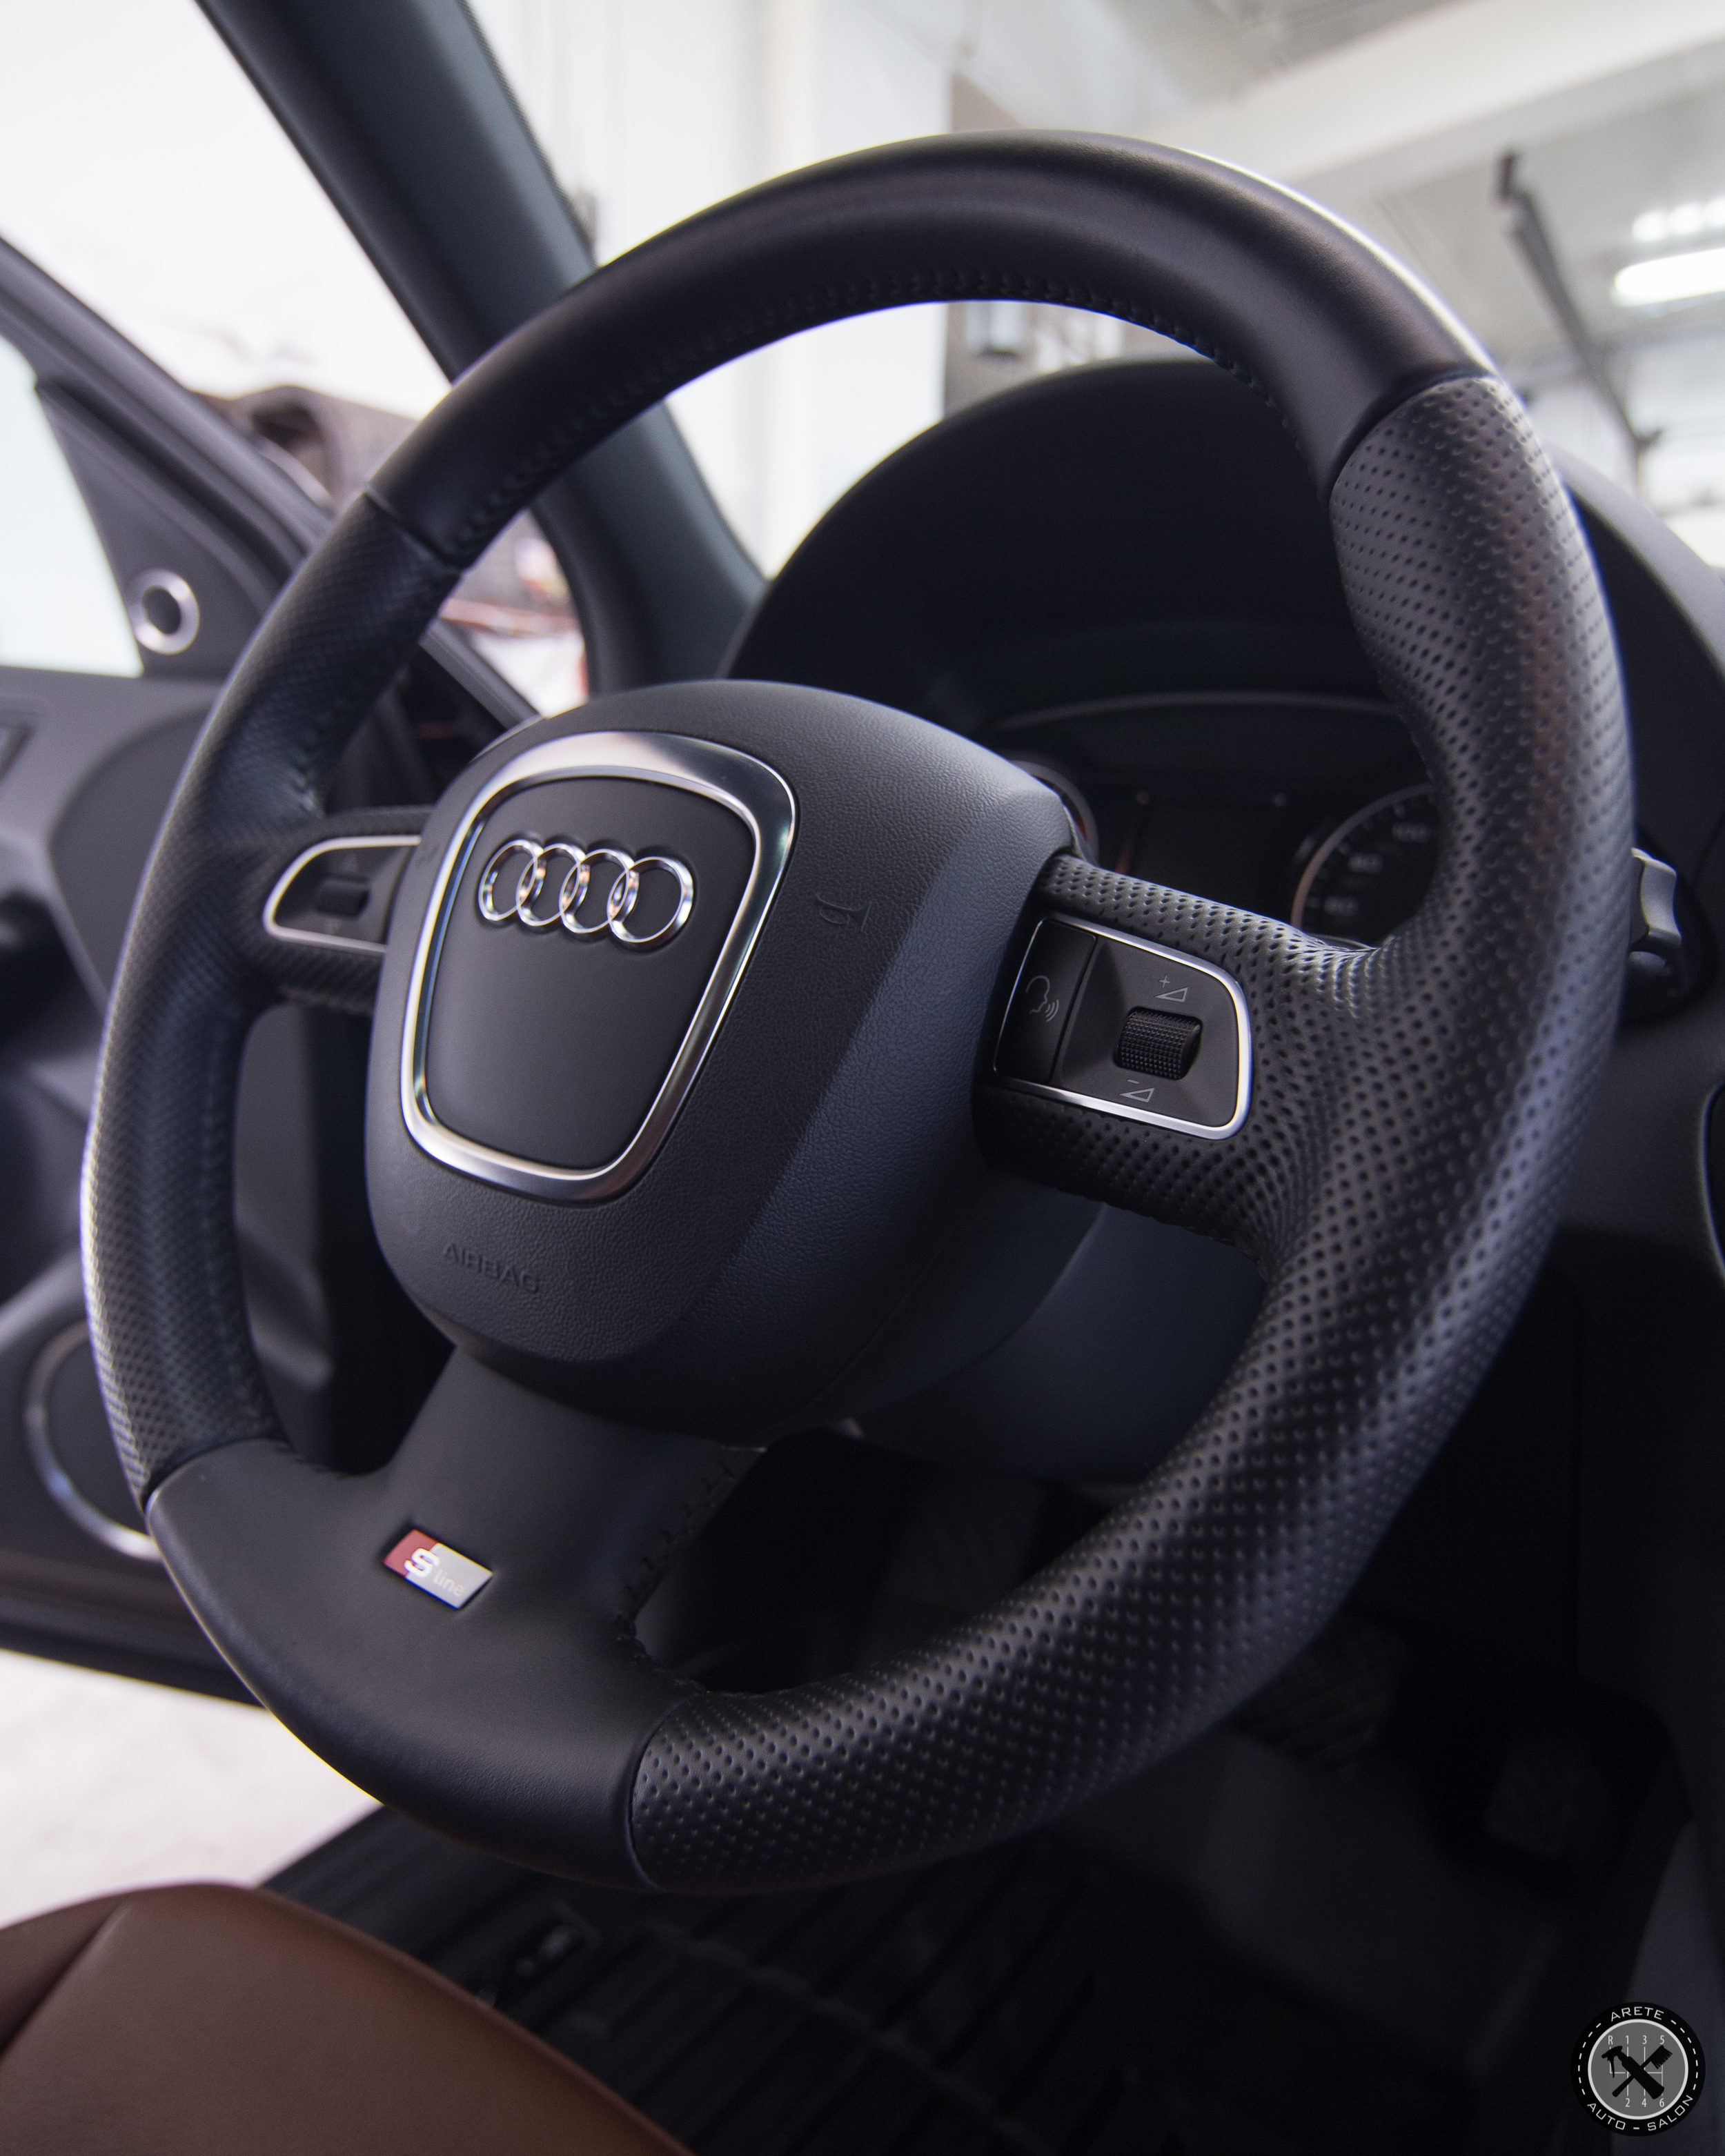 As a part of our service we also applied a coating to the steering wheel.